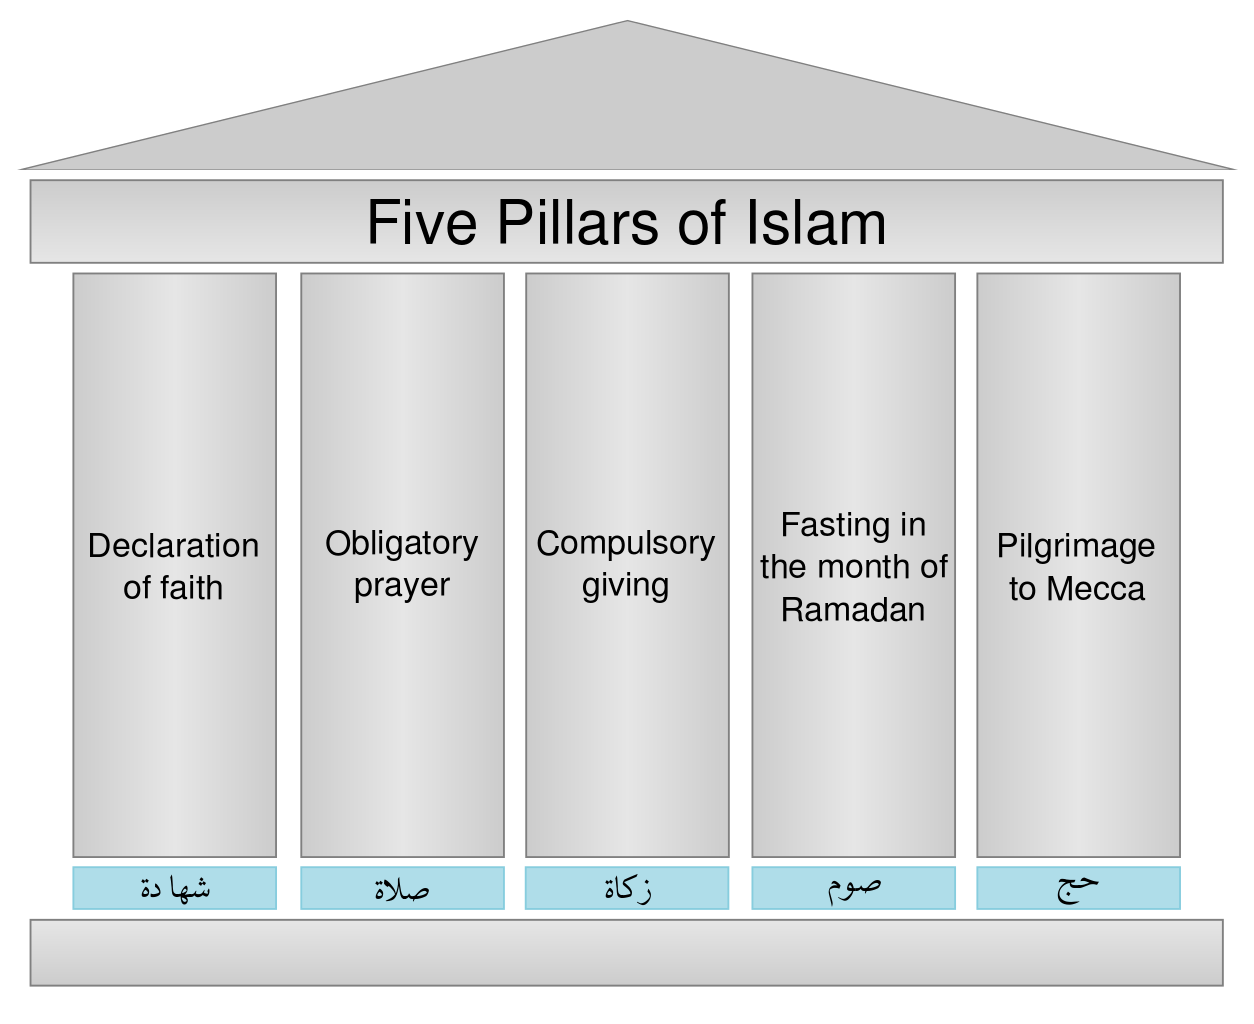 The image, representing the Five Pillars of Islam, is that of a house with each of the pillars holding up the roof of the building. The names of each of the five pillars are written on each column, both in English and Arabic.